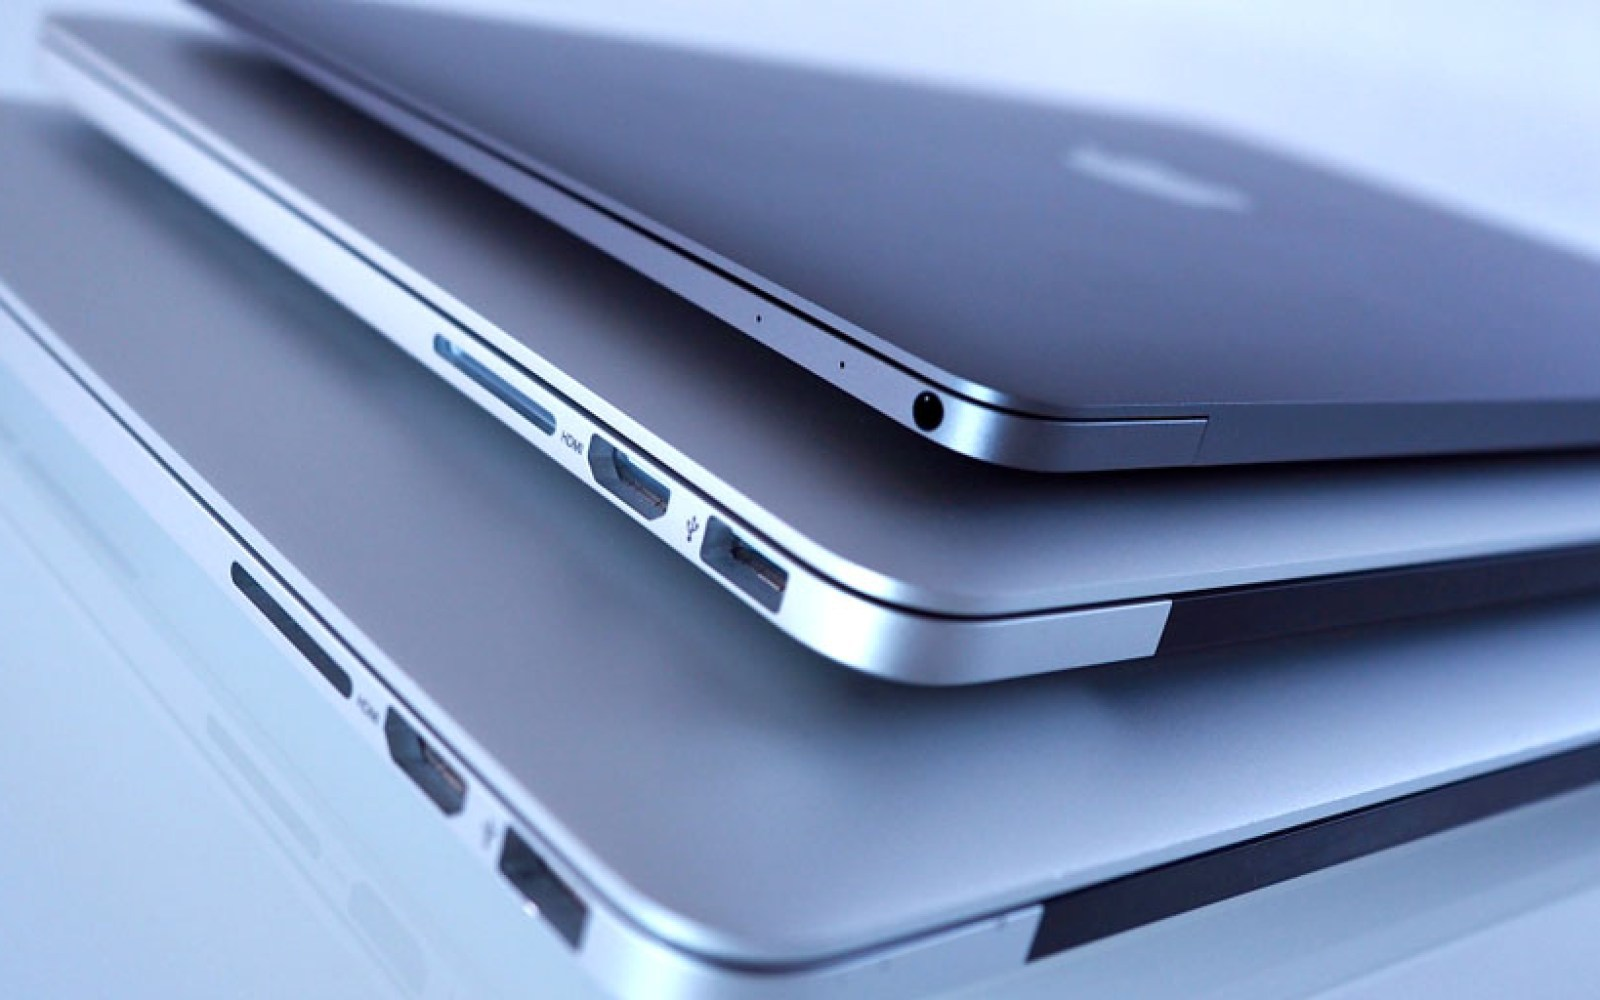 Opinion: What can we expect from the 2016 MacBooks, rumored to be launched by June?